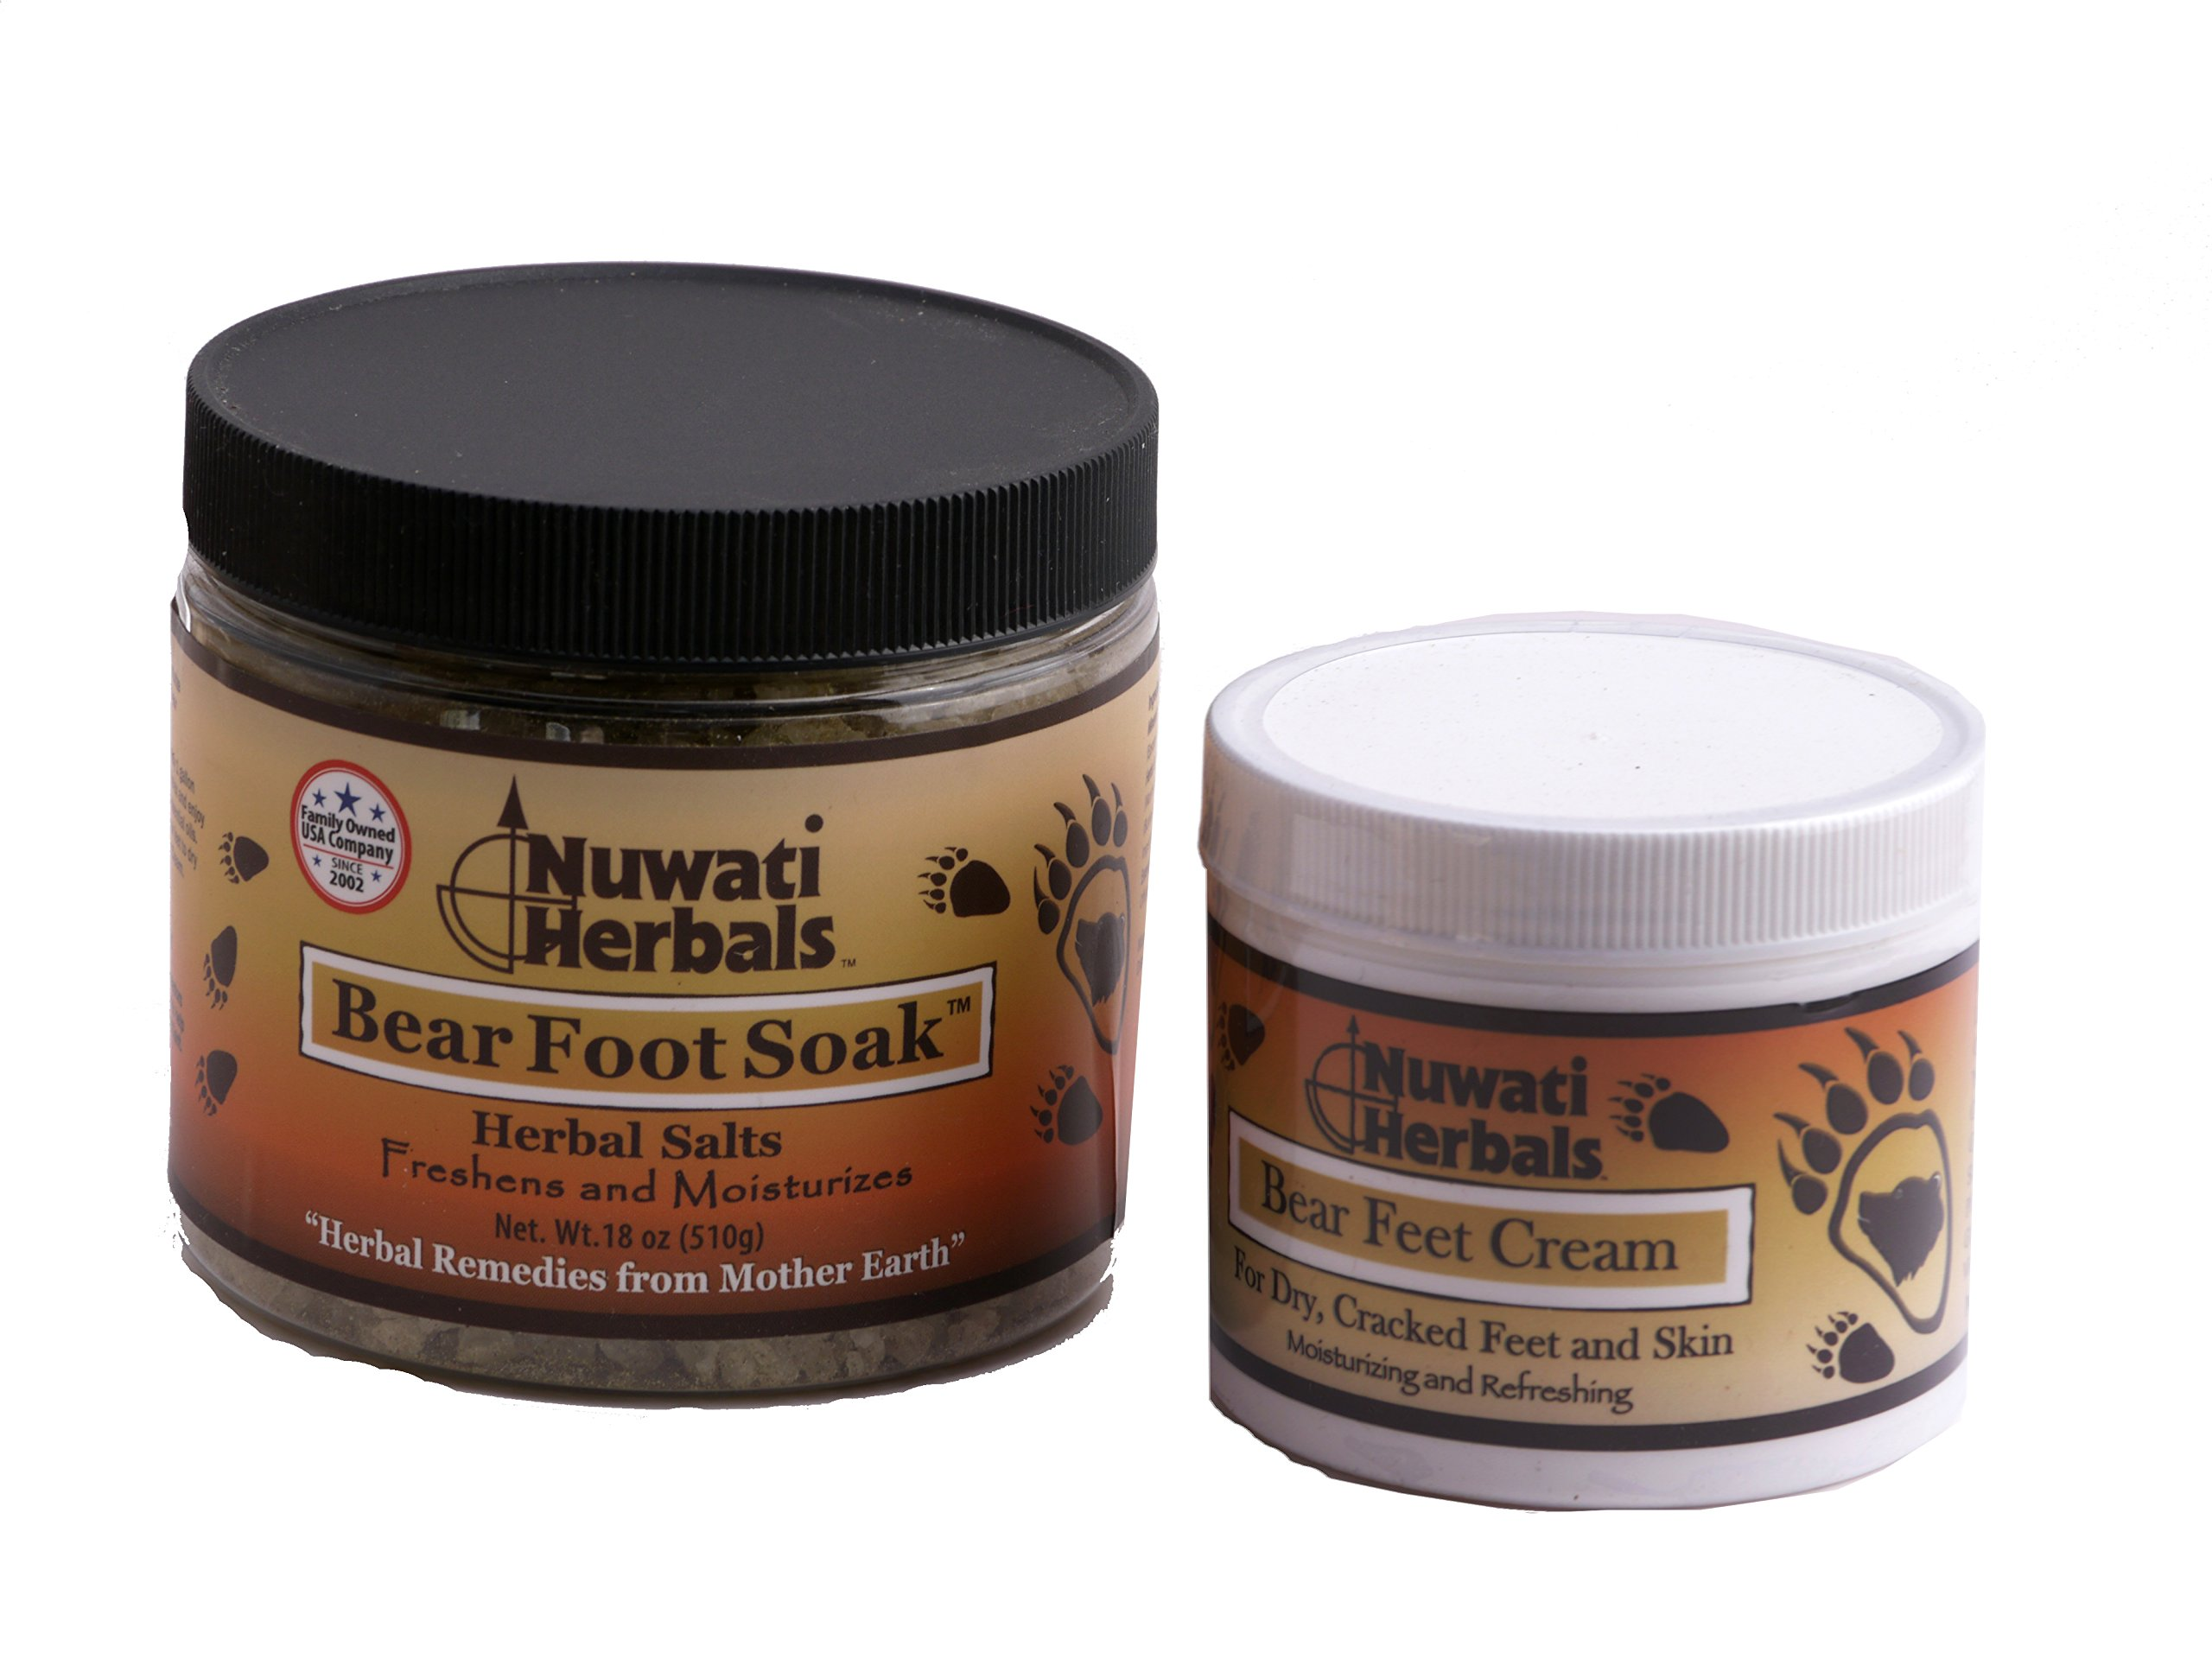 Nuwati Herbals - Foot Care Package - Freshens and Moisturizes Feet - Includes Bear Foot Herbal Soak Salts and Cream for Dry Cracked Feet